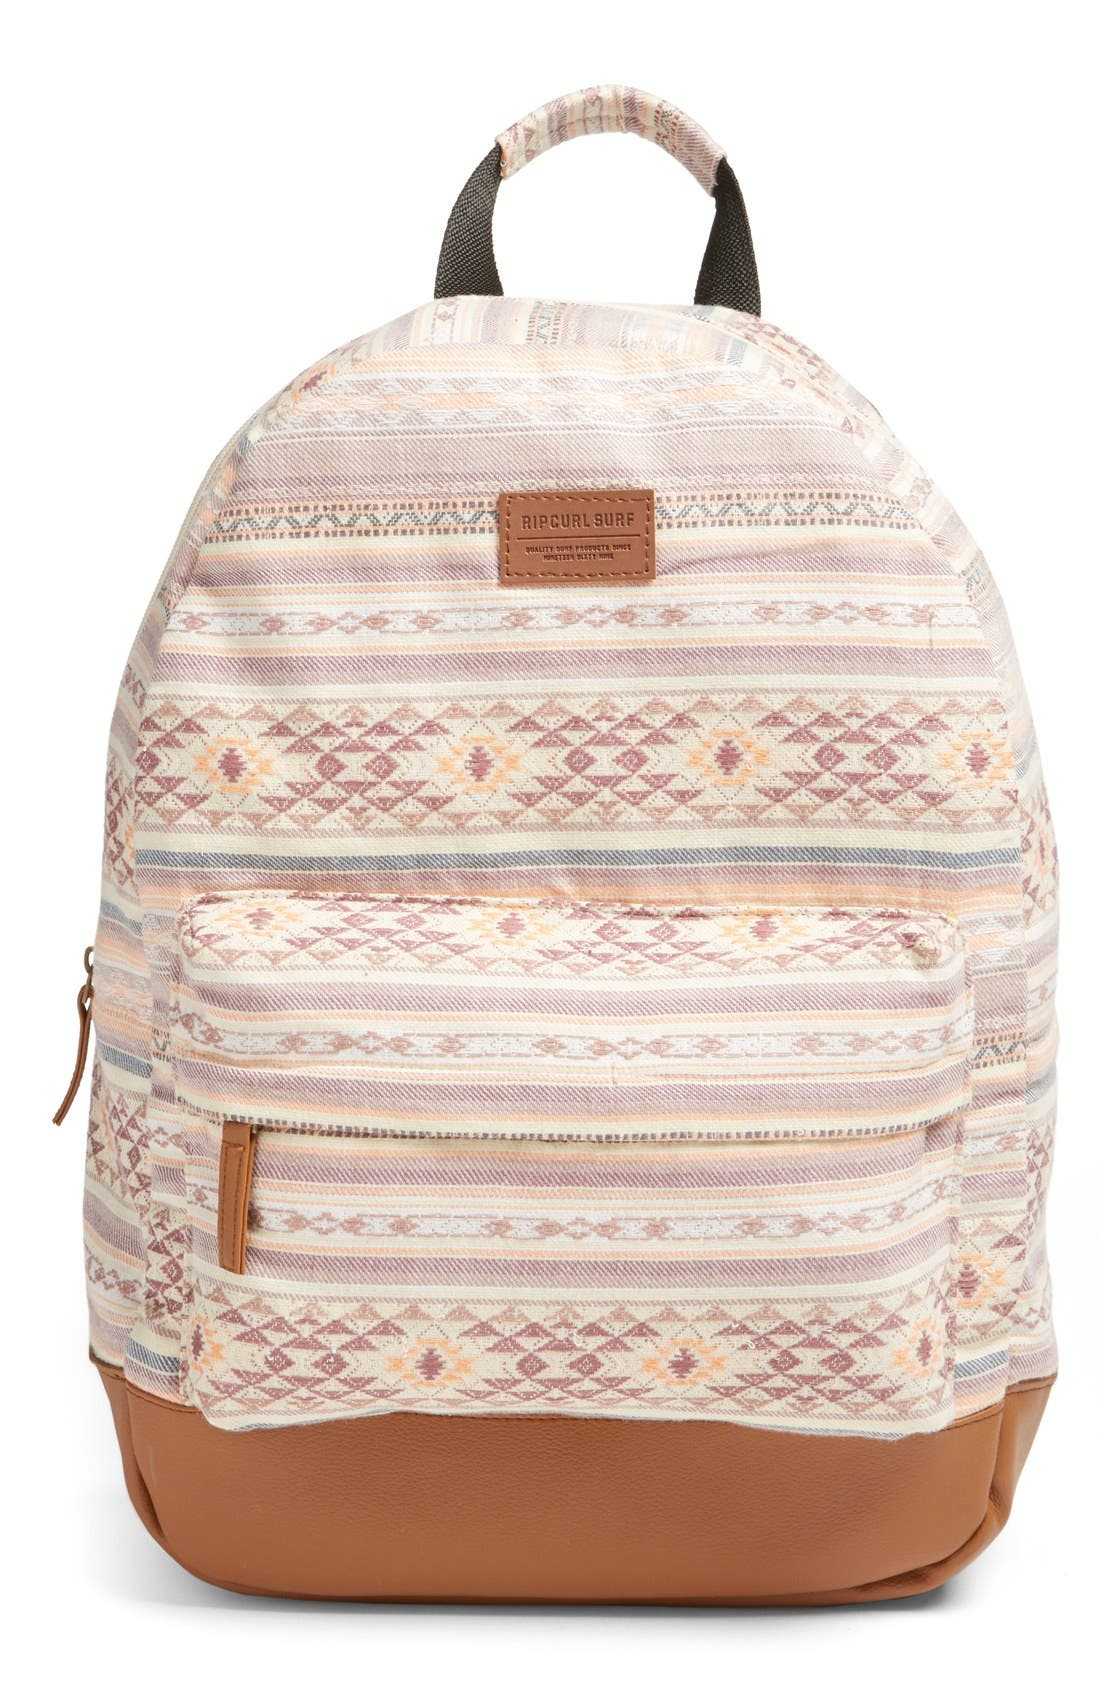 Main Image - Rip Curl 'Surf Bandit' Woven Backpack